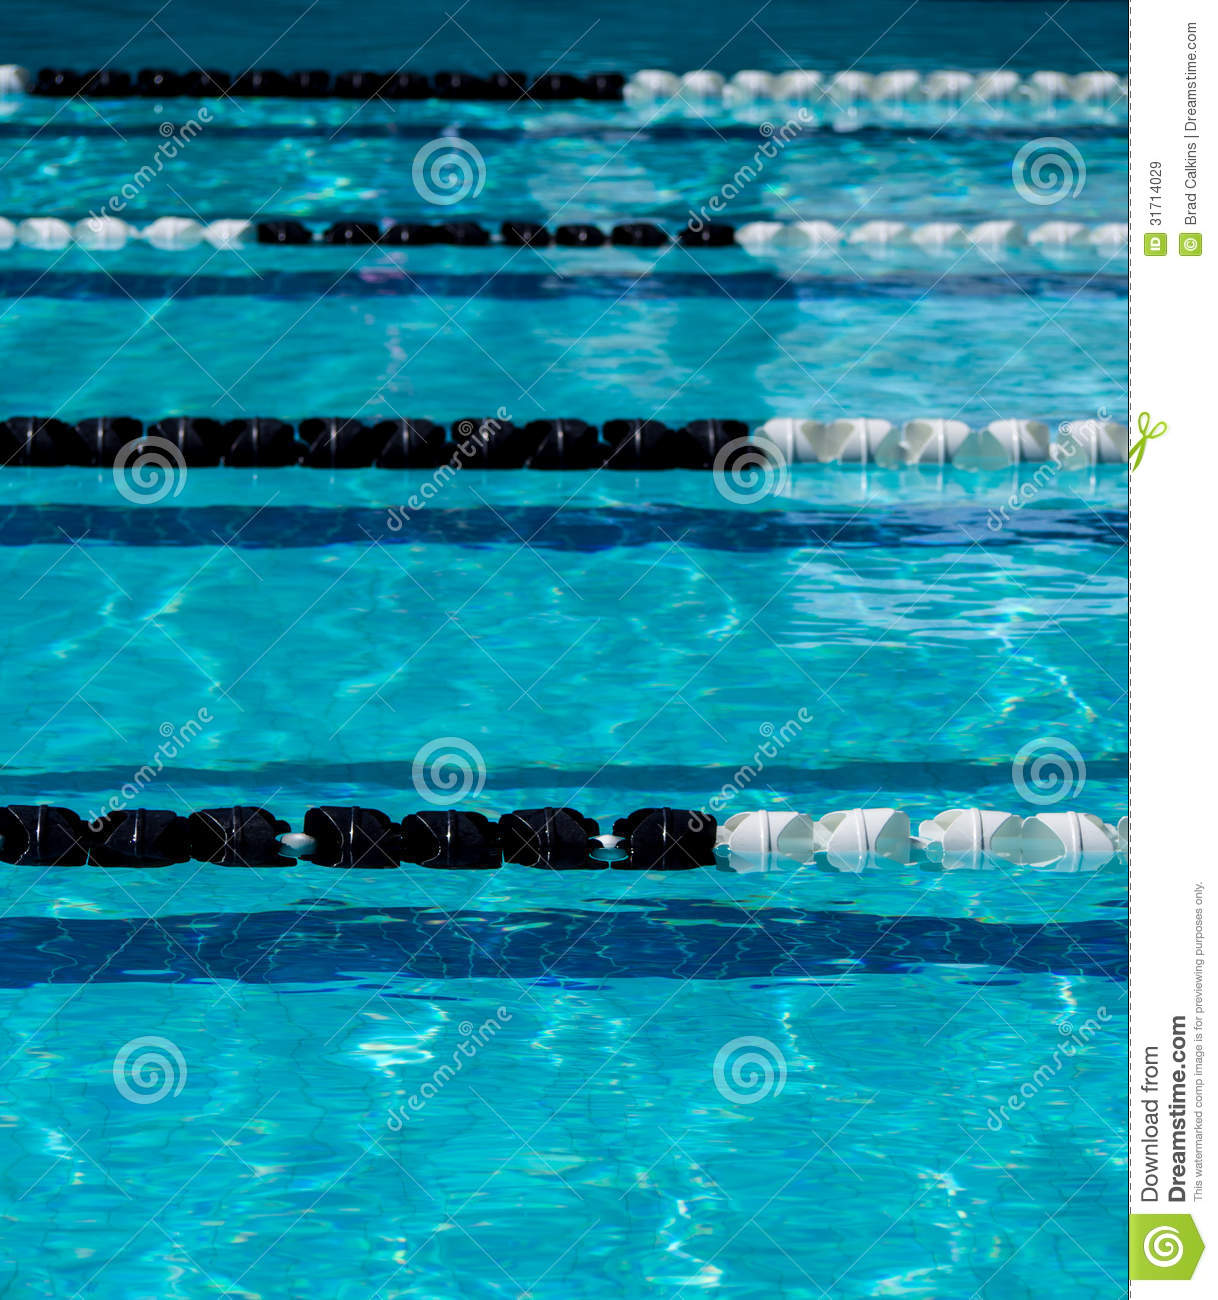 Pool Lane Ropes Stock Image Image Of Background Pool